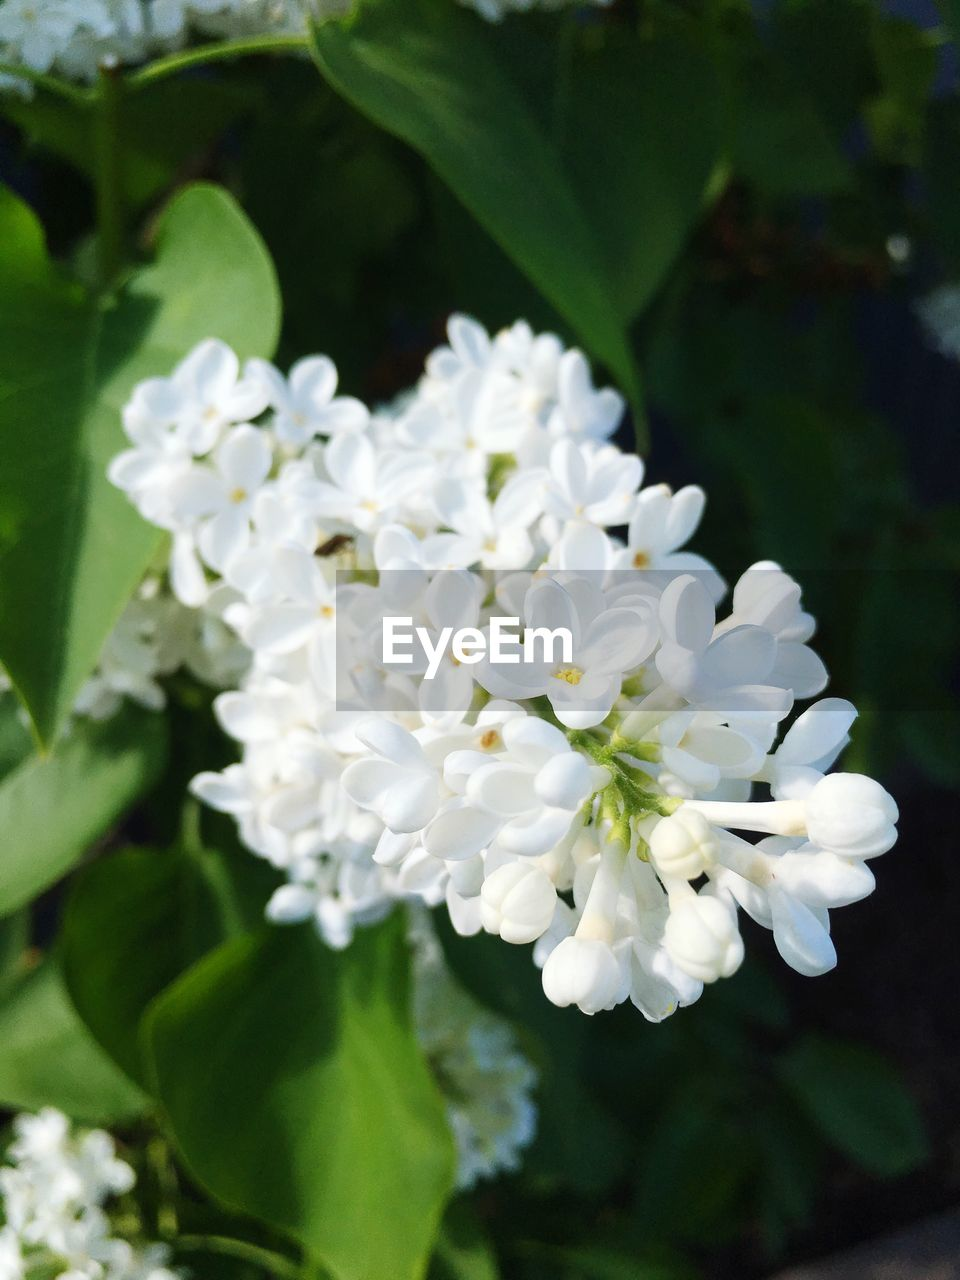 flower, white color, nature, beauty in nature, growth, petal, fragility, plant, no people, freshness, leaf, close-up, blooming, scented, day, outdoors, flower head